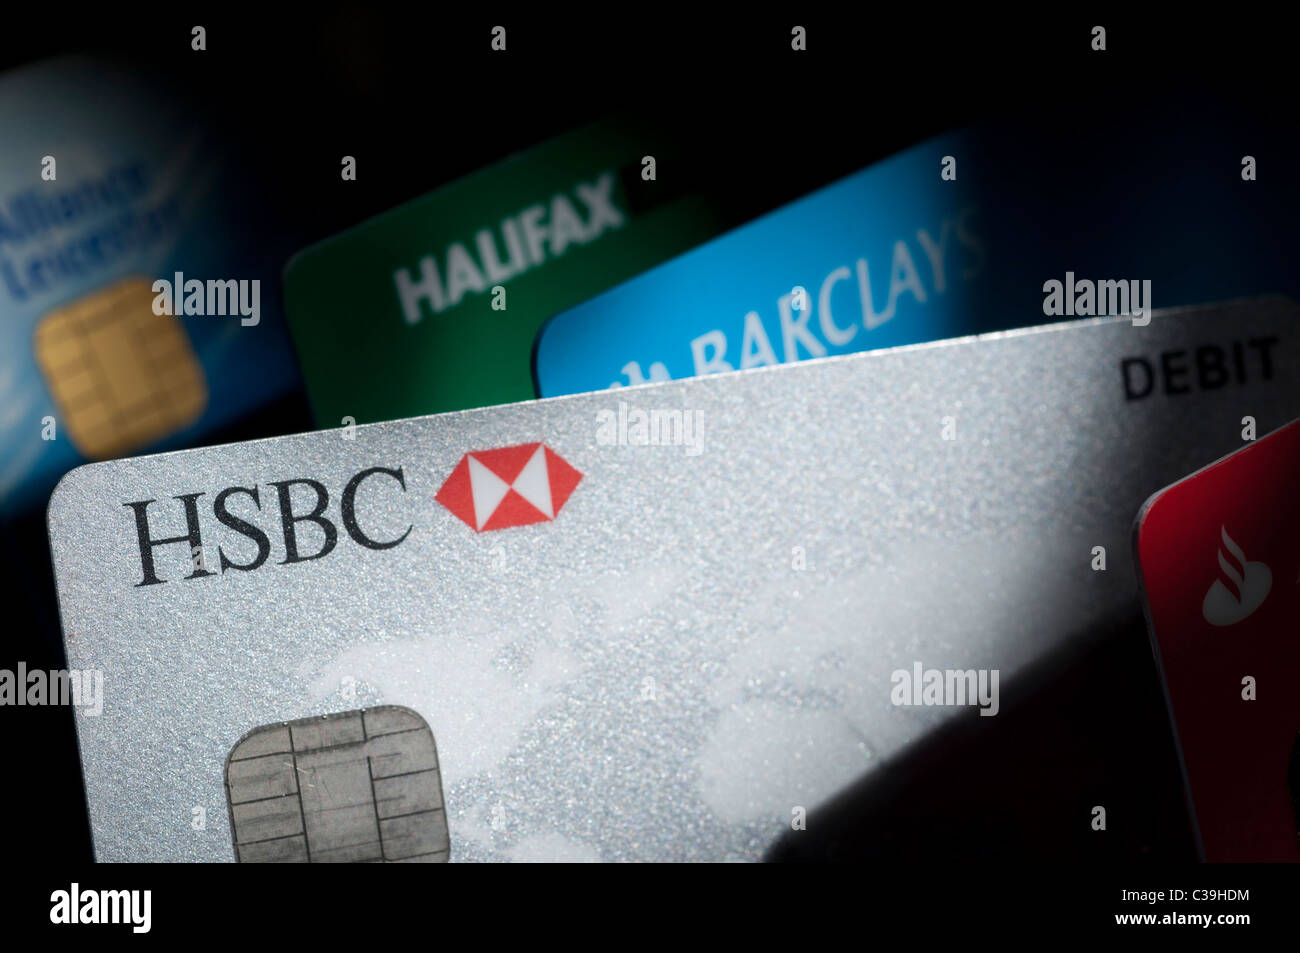 Cash Pool Santander Barclays Debit Card Stock Photos And Barclays Debit Card